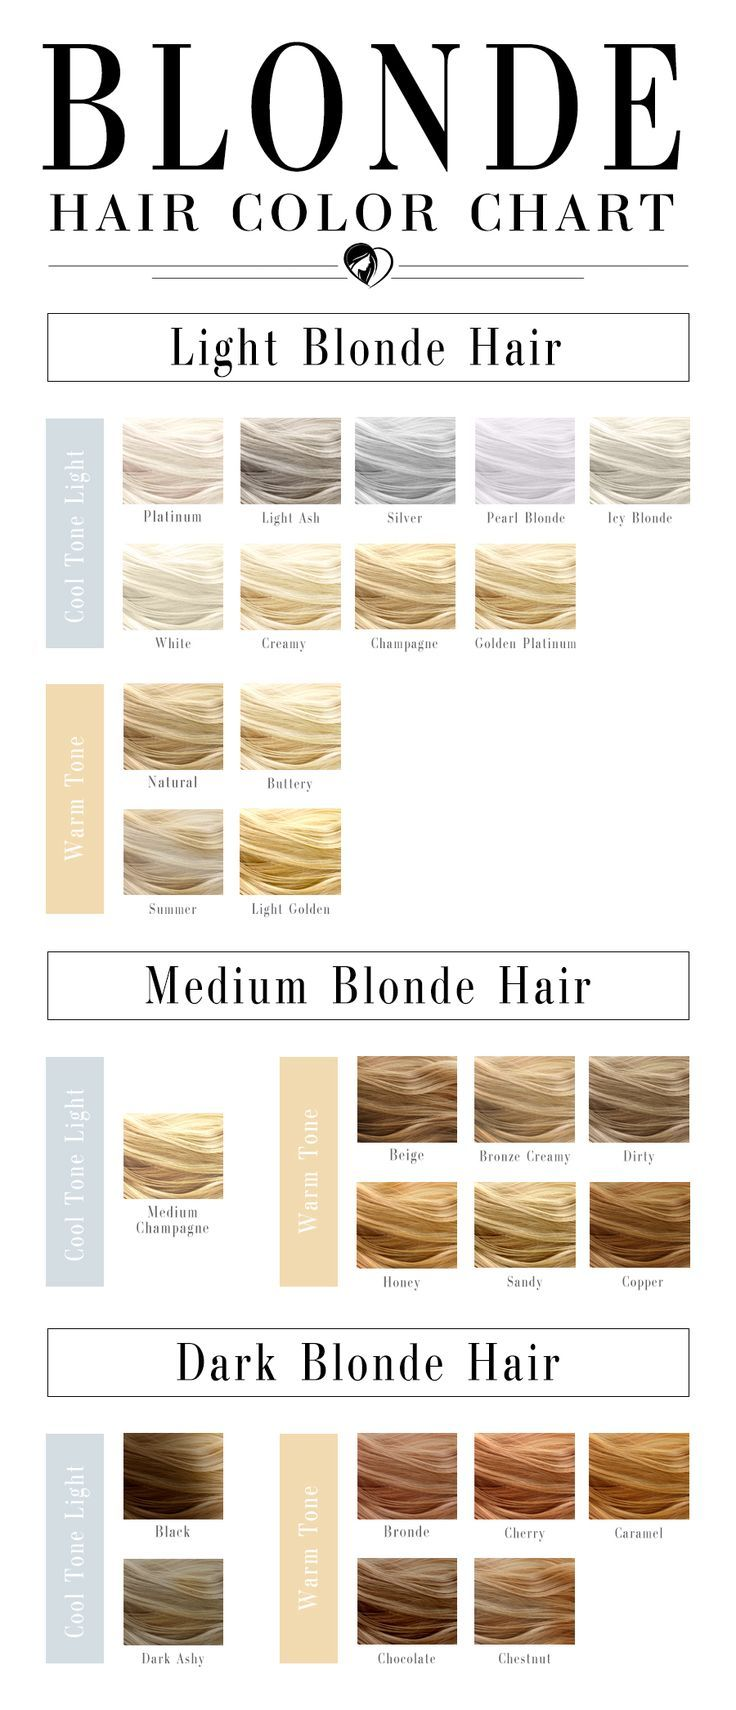 Hair Color 2017 2018 What Kind Of Blonde Mood Are You In